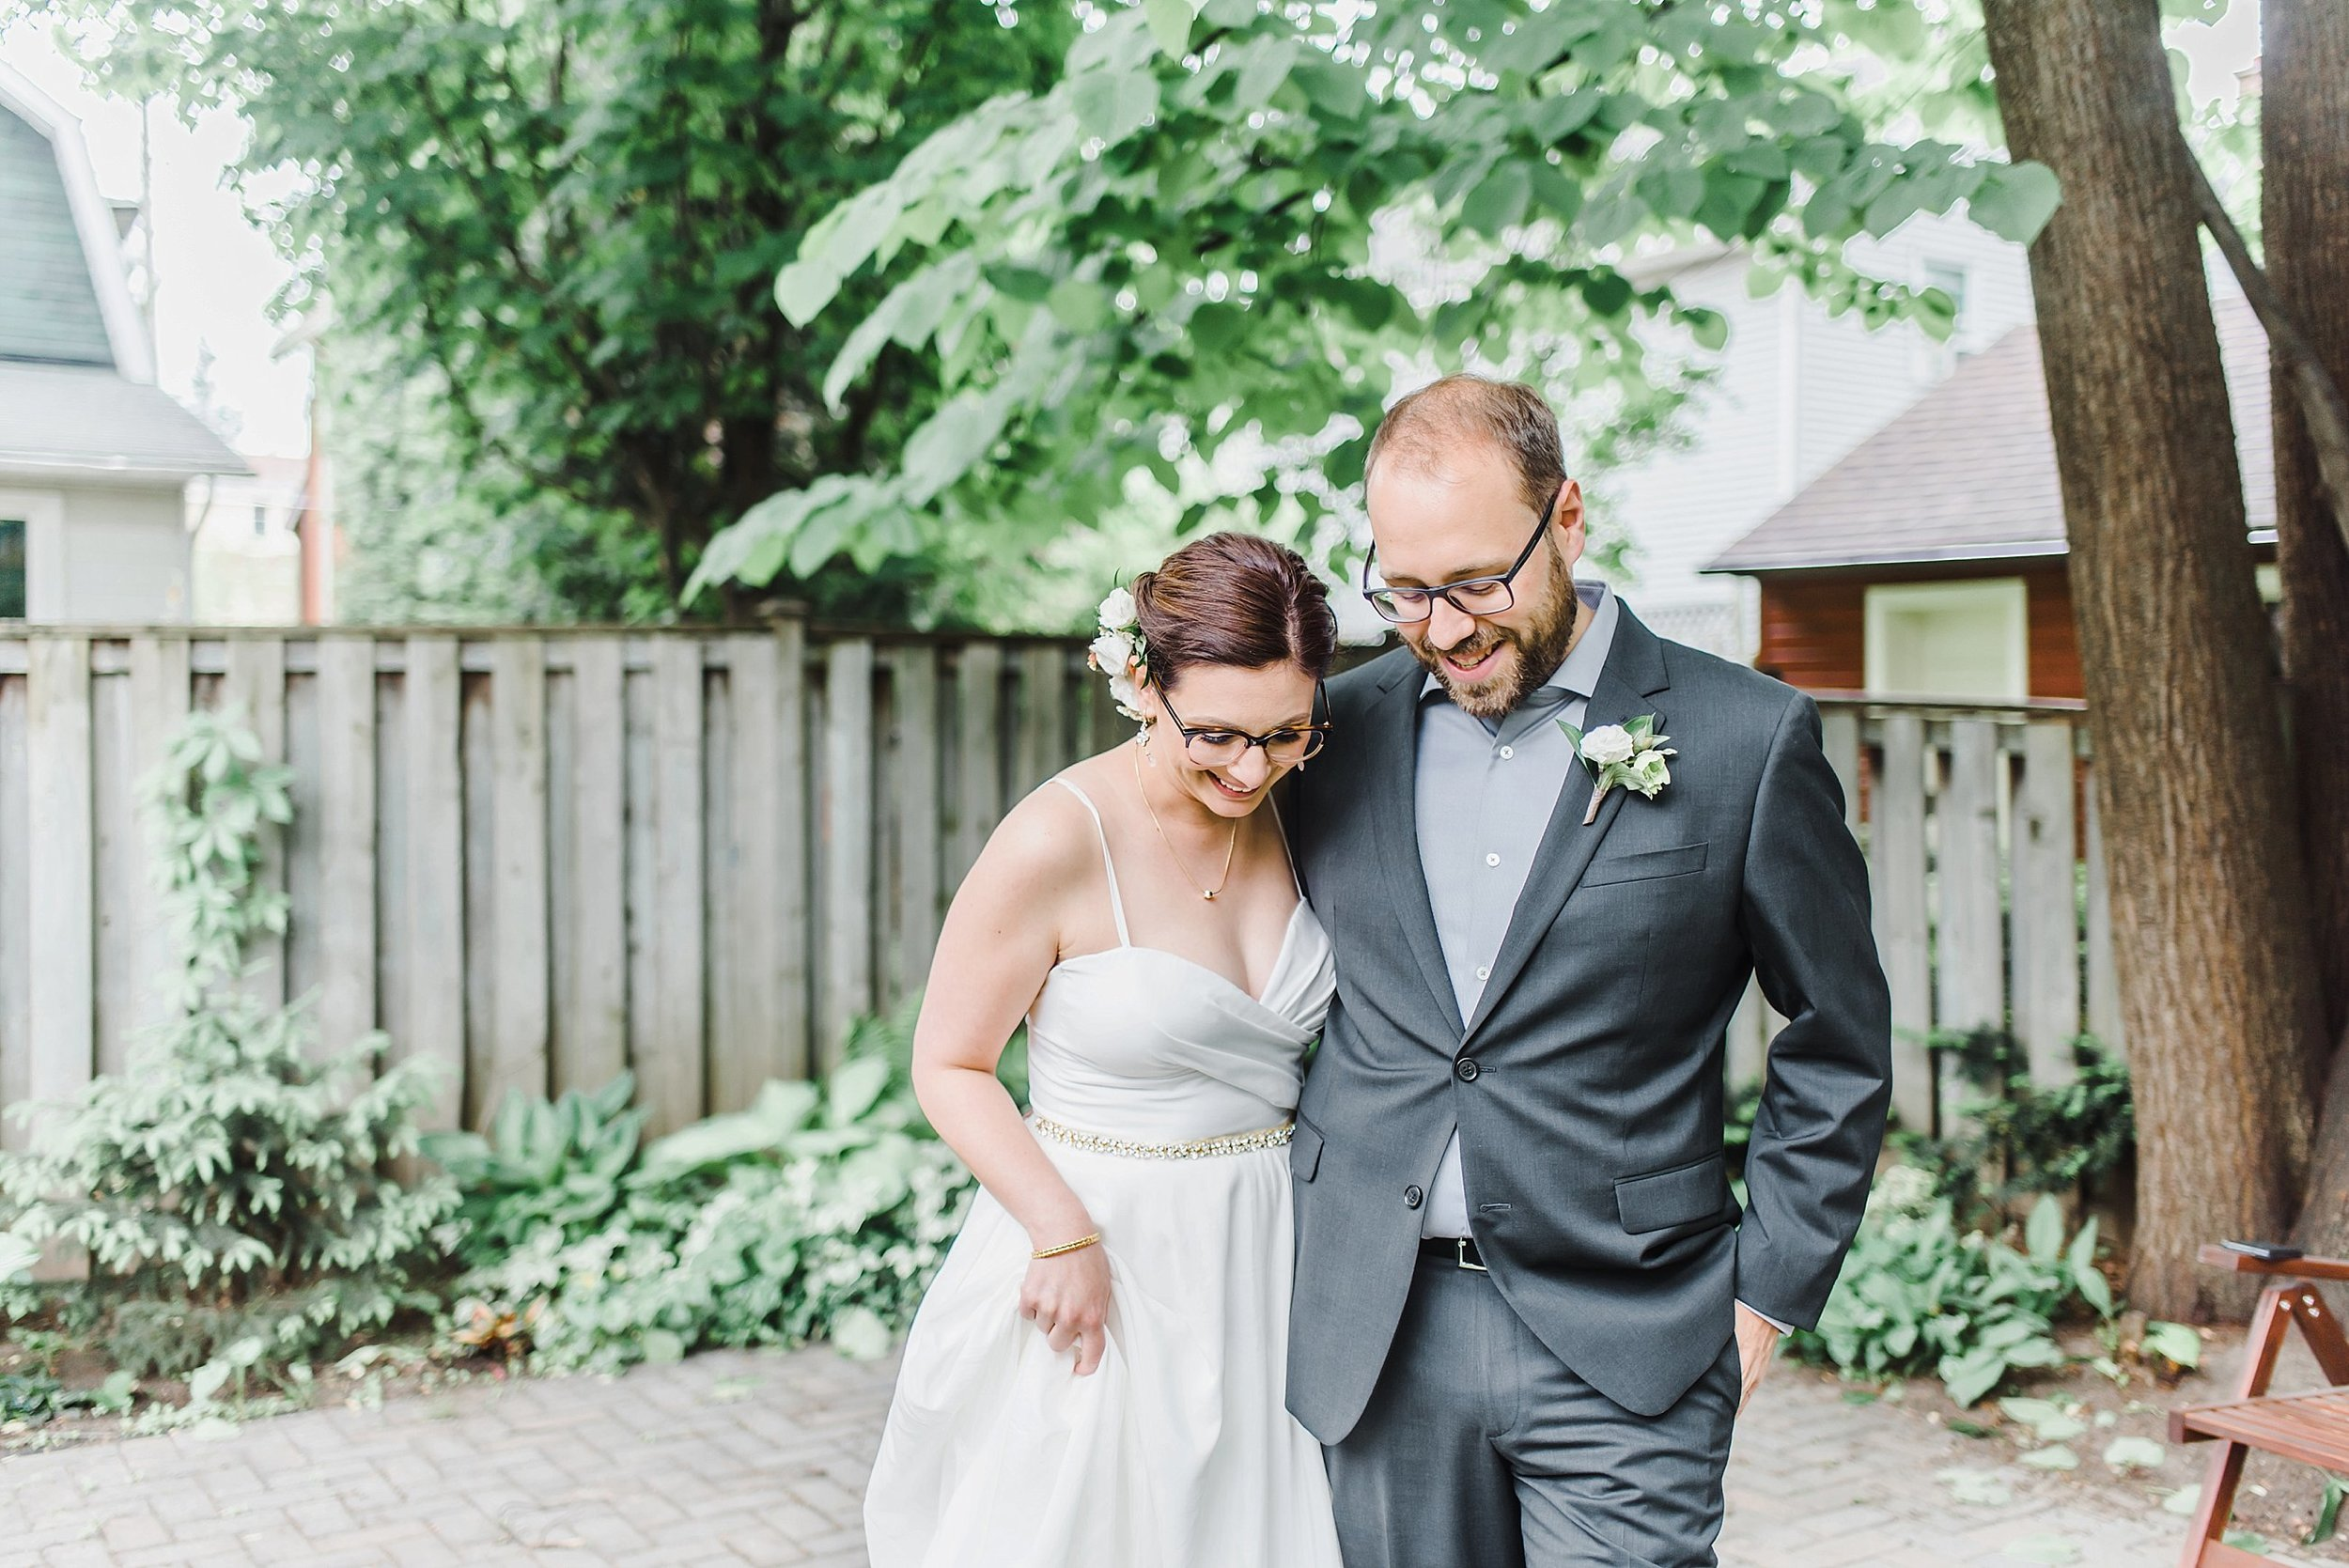 light airy indie fine art ottawa wedding photographer | Ali and Batoul Photography_1696.jpg